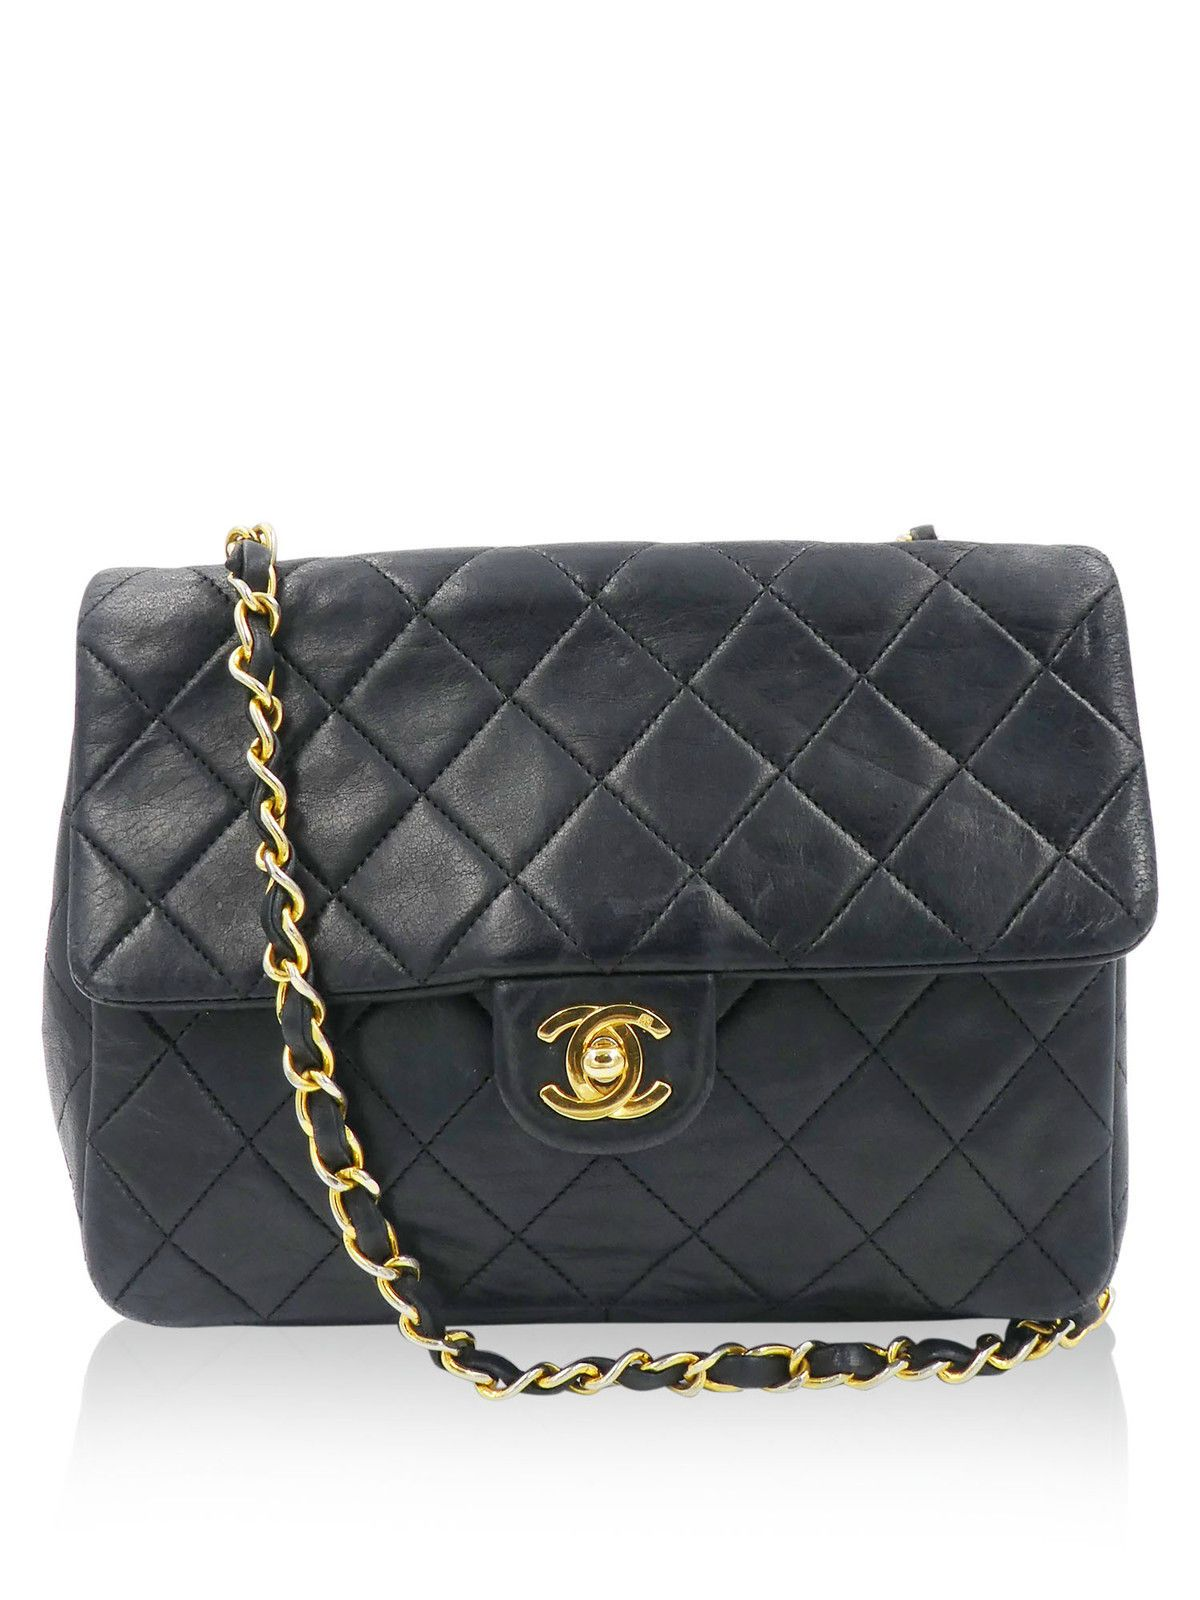 3f8b9300eb17 Vintage chanel | Vintage Chanel | Vintage chanel, Chanel, Bags